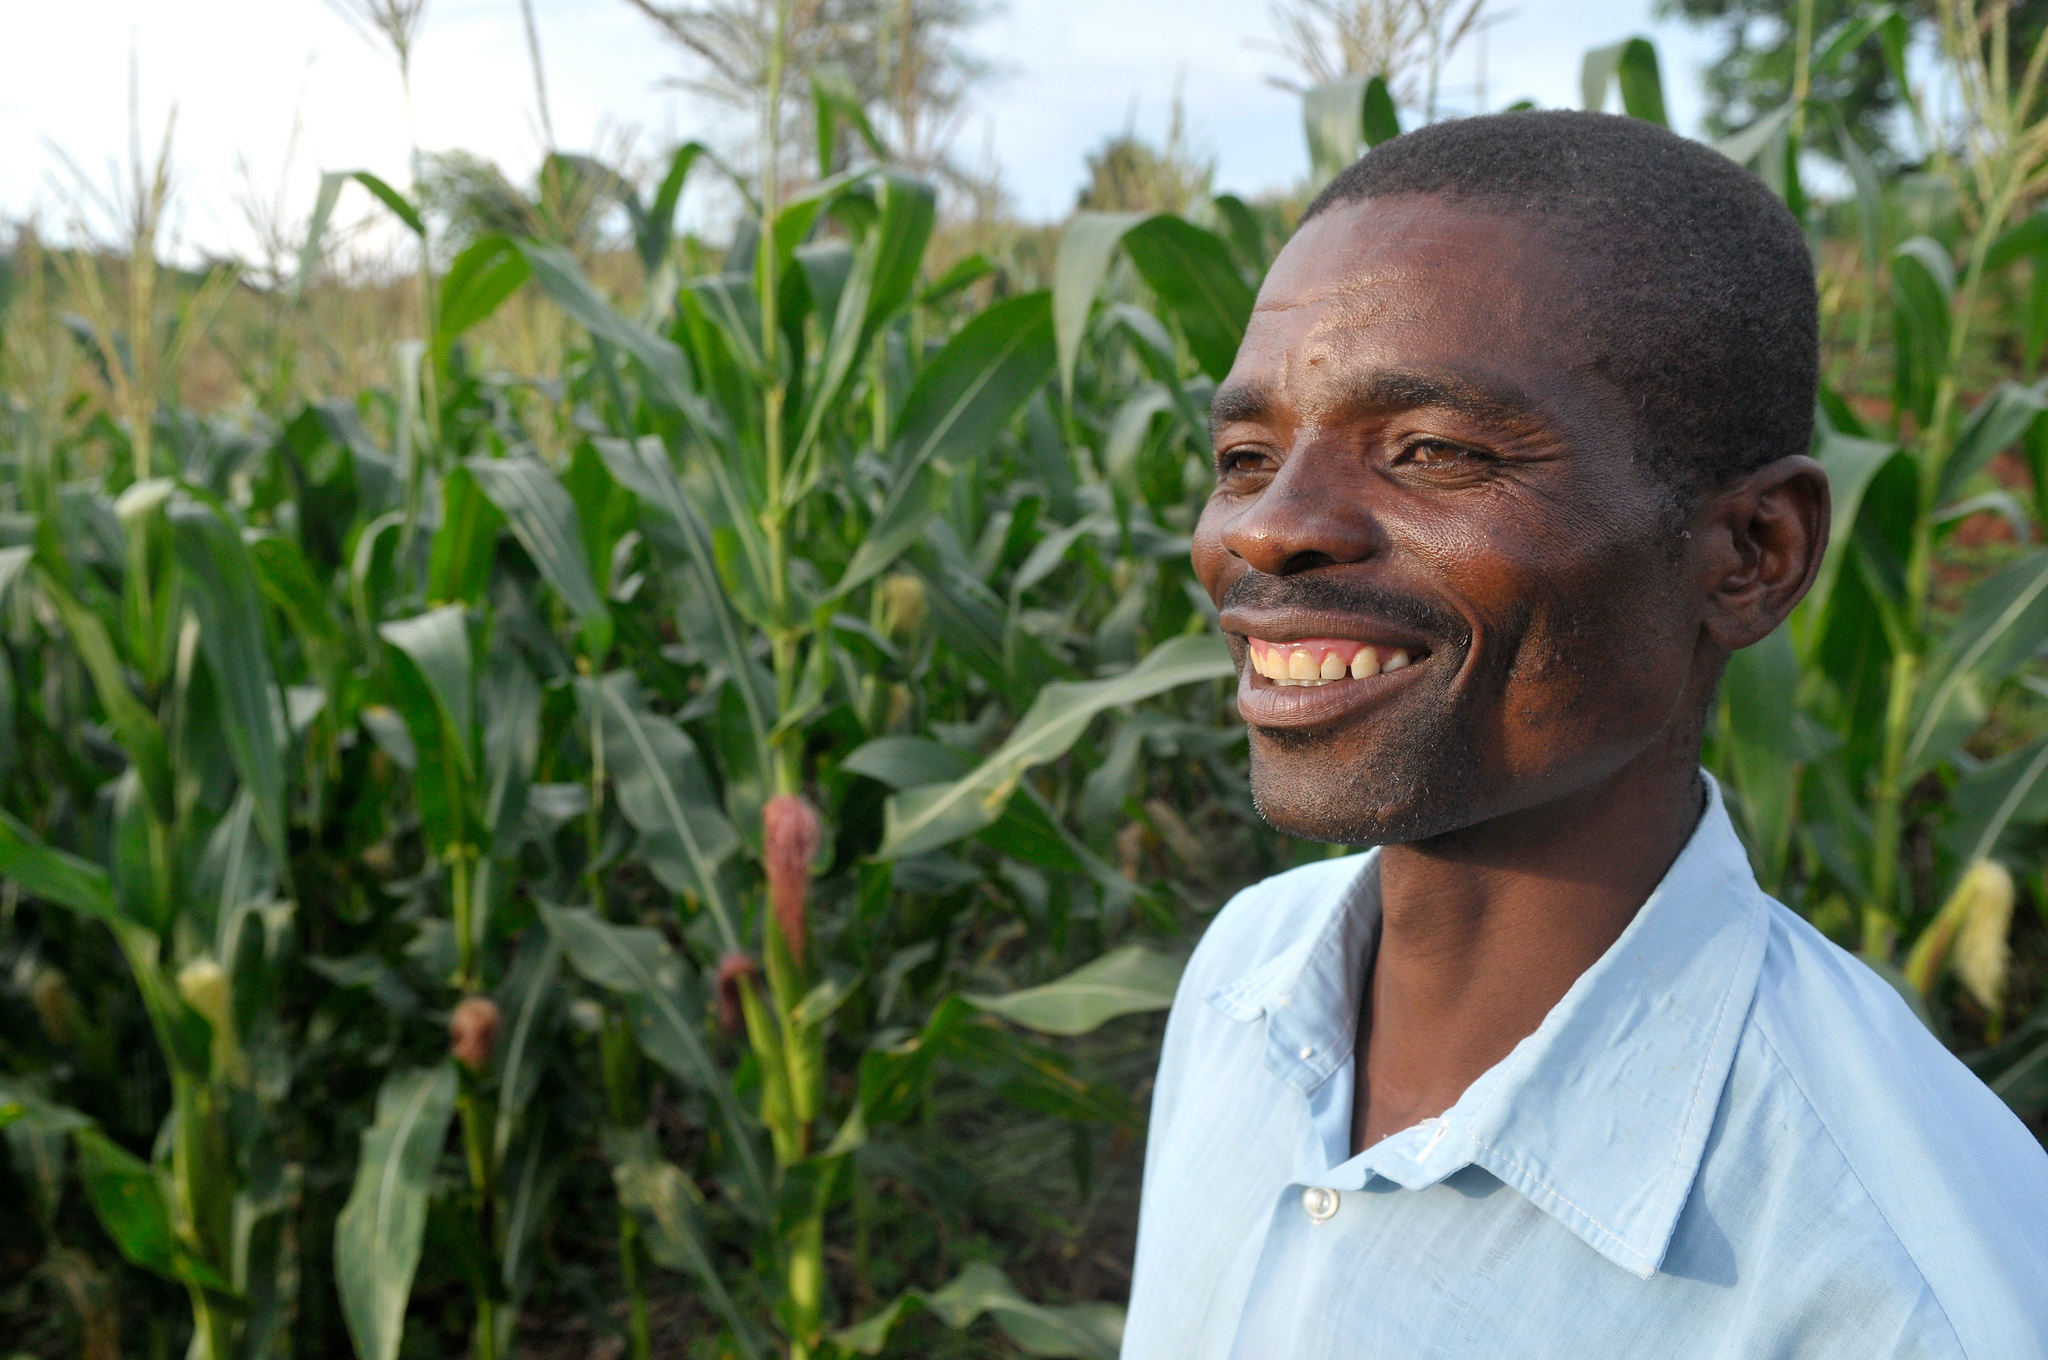 A Malawian farmer in a field